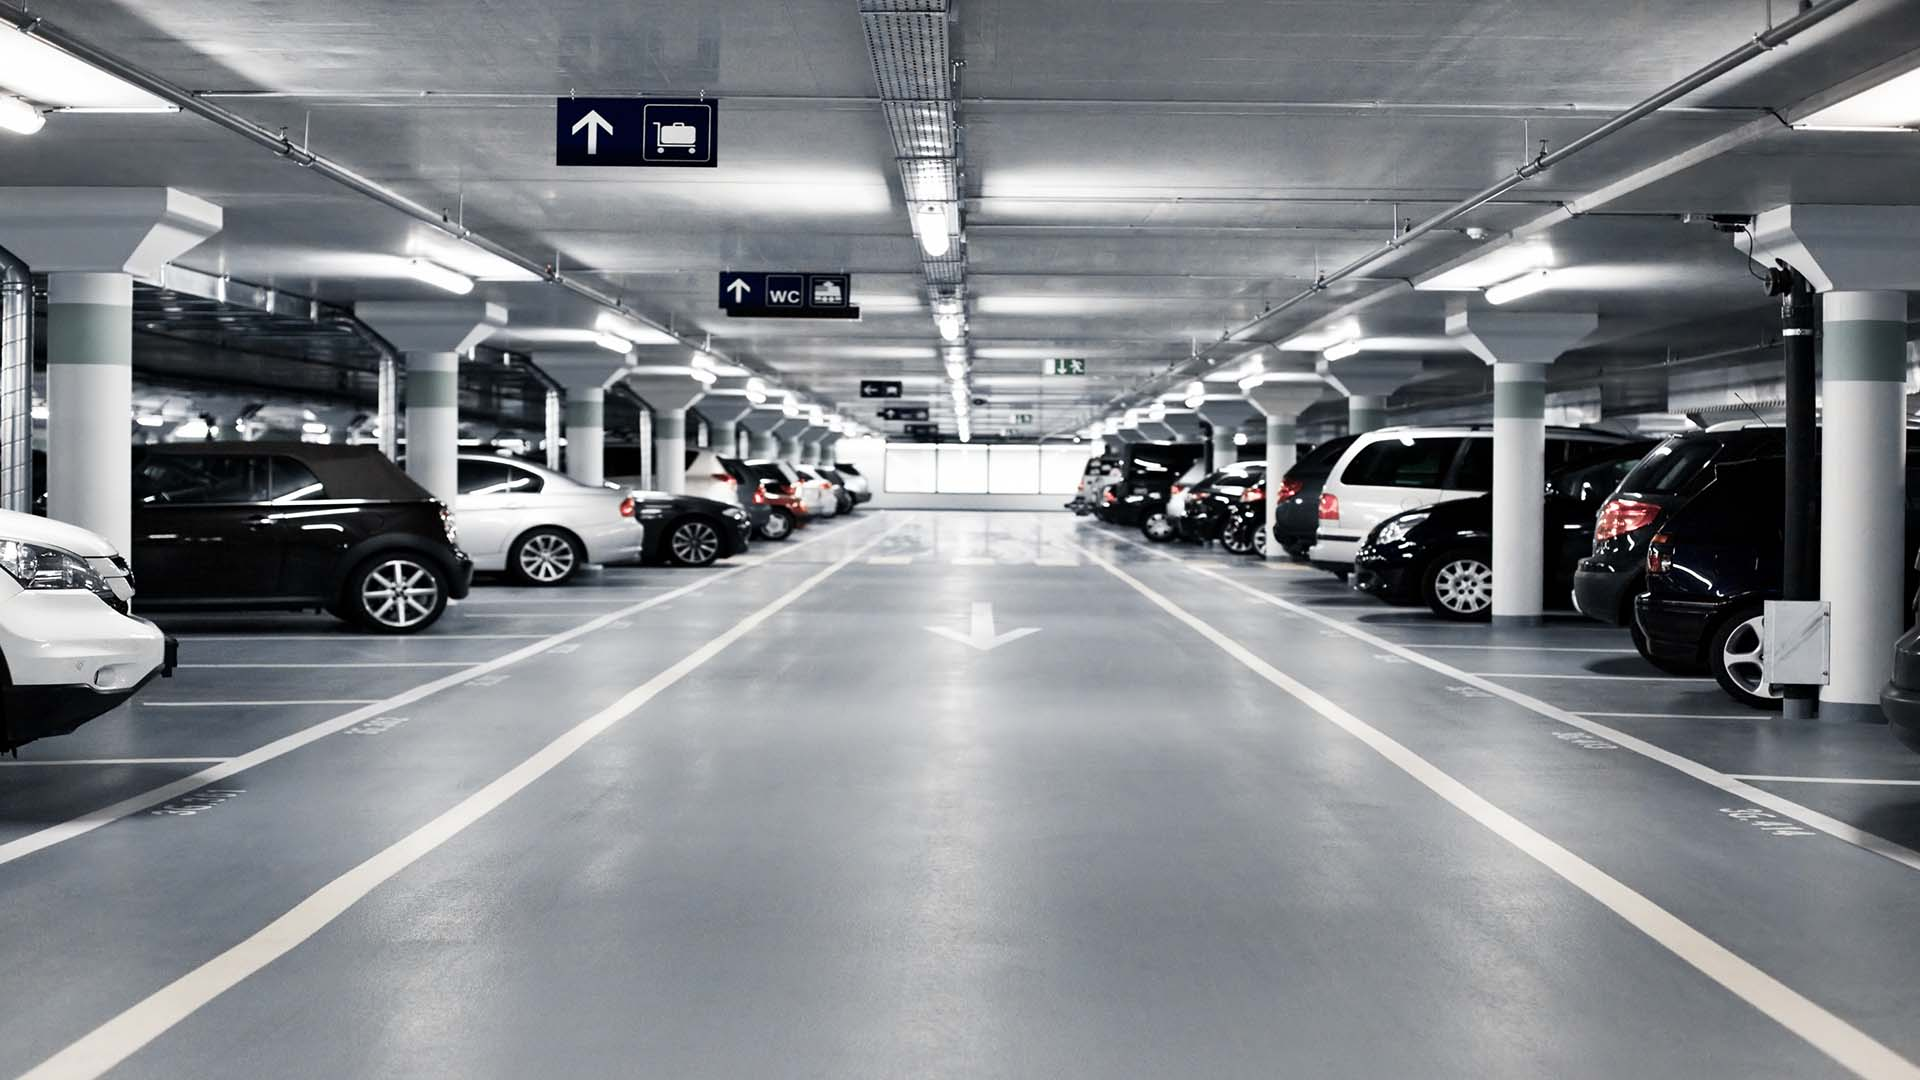 Creating Smart Parking Space With The Help Of Technology